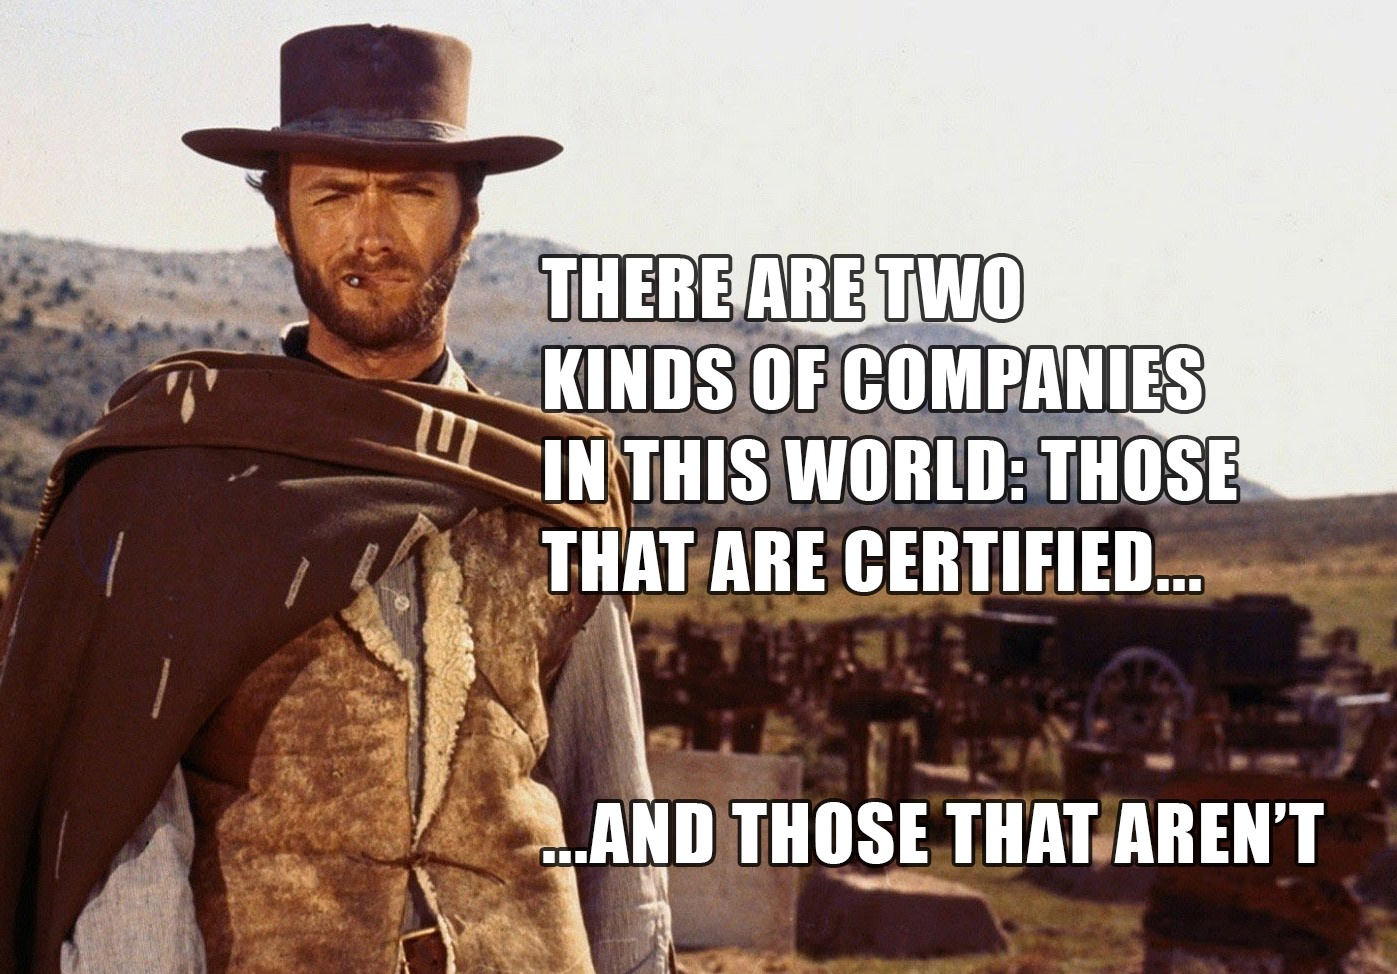 There are two kinds of companies in this world: those that are certified, and those that aren't